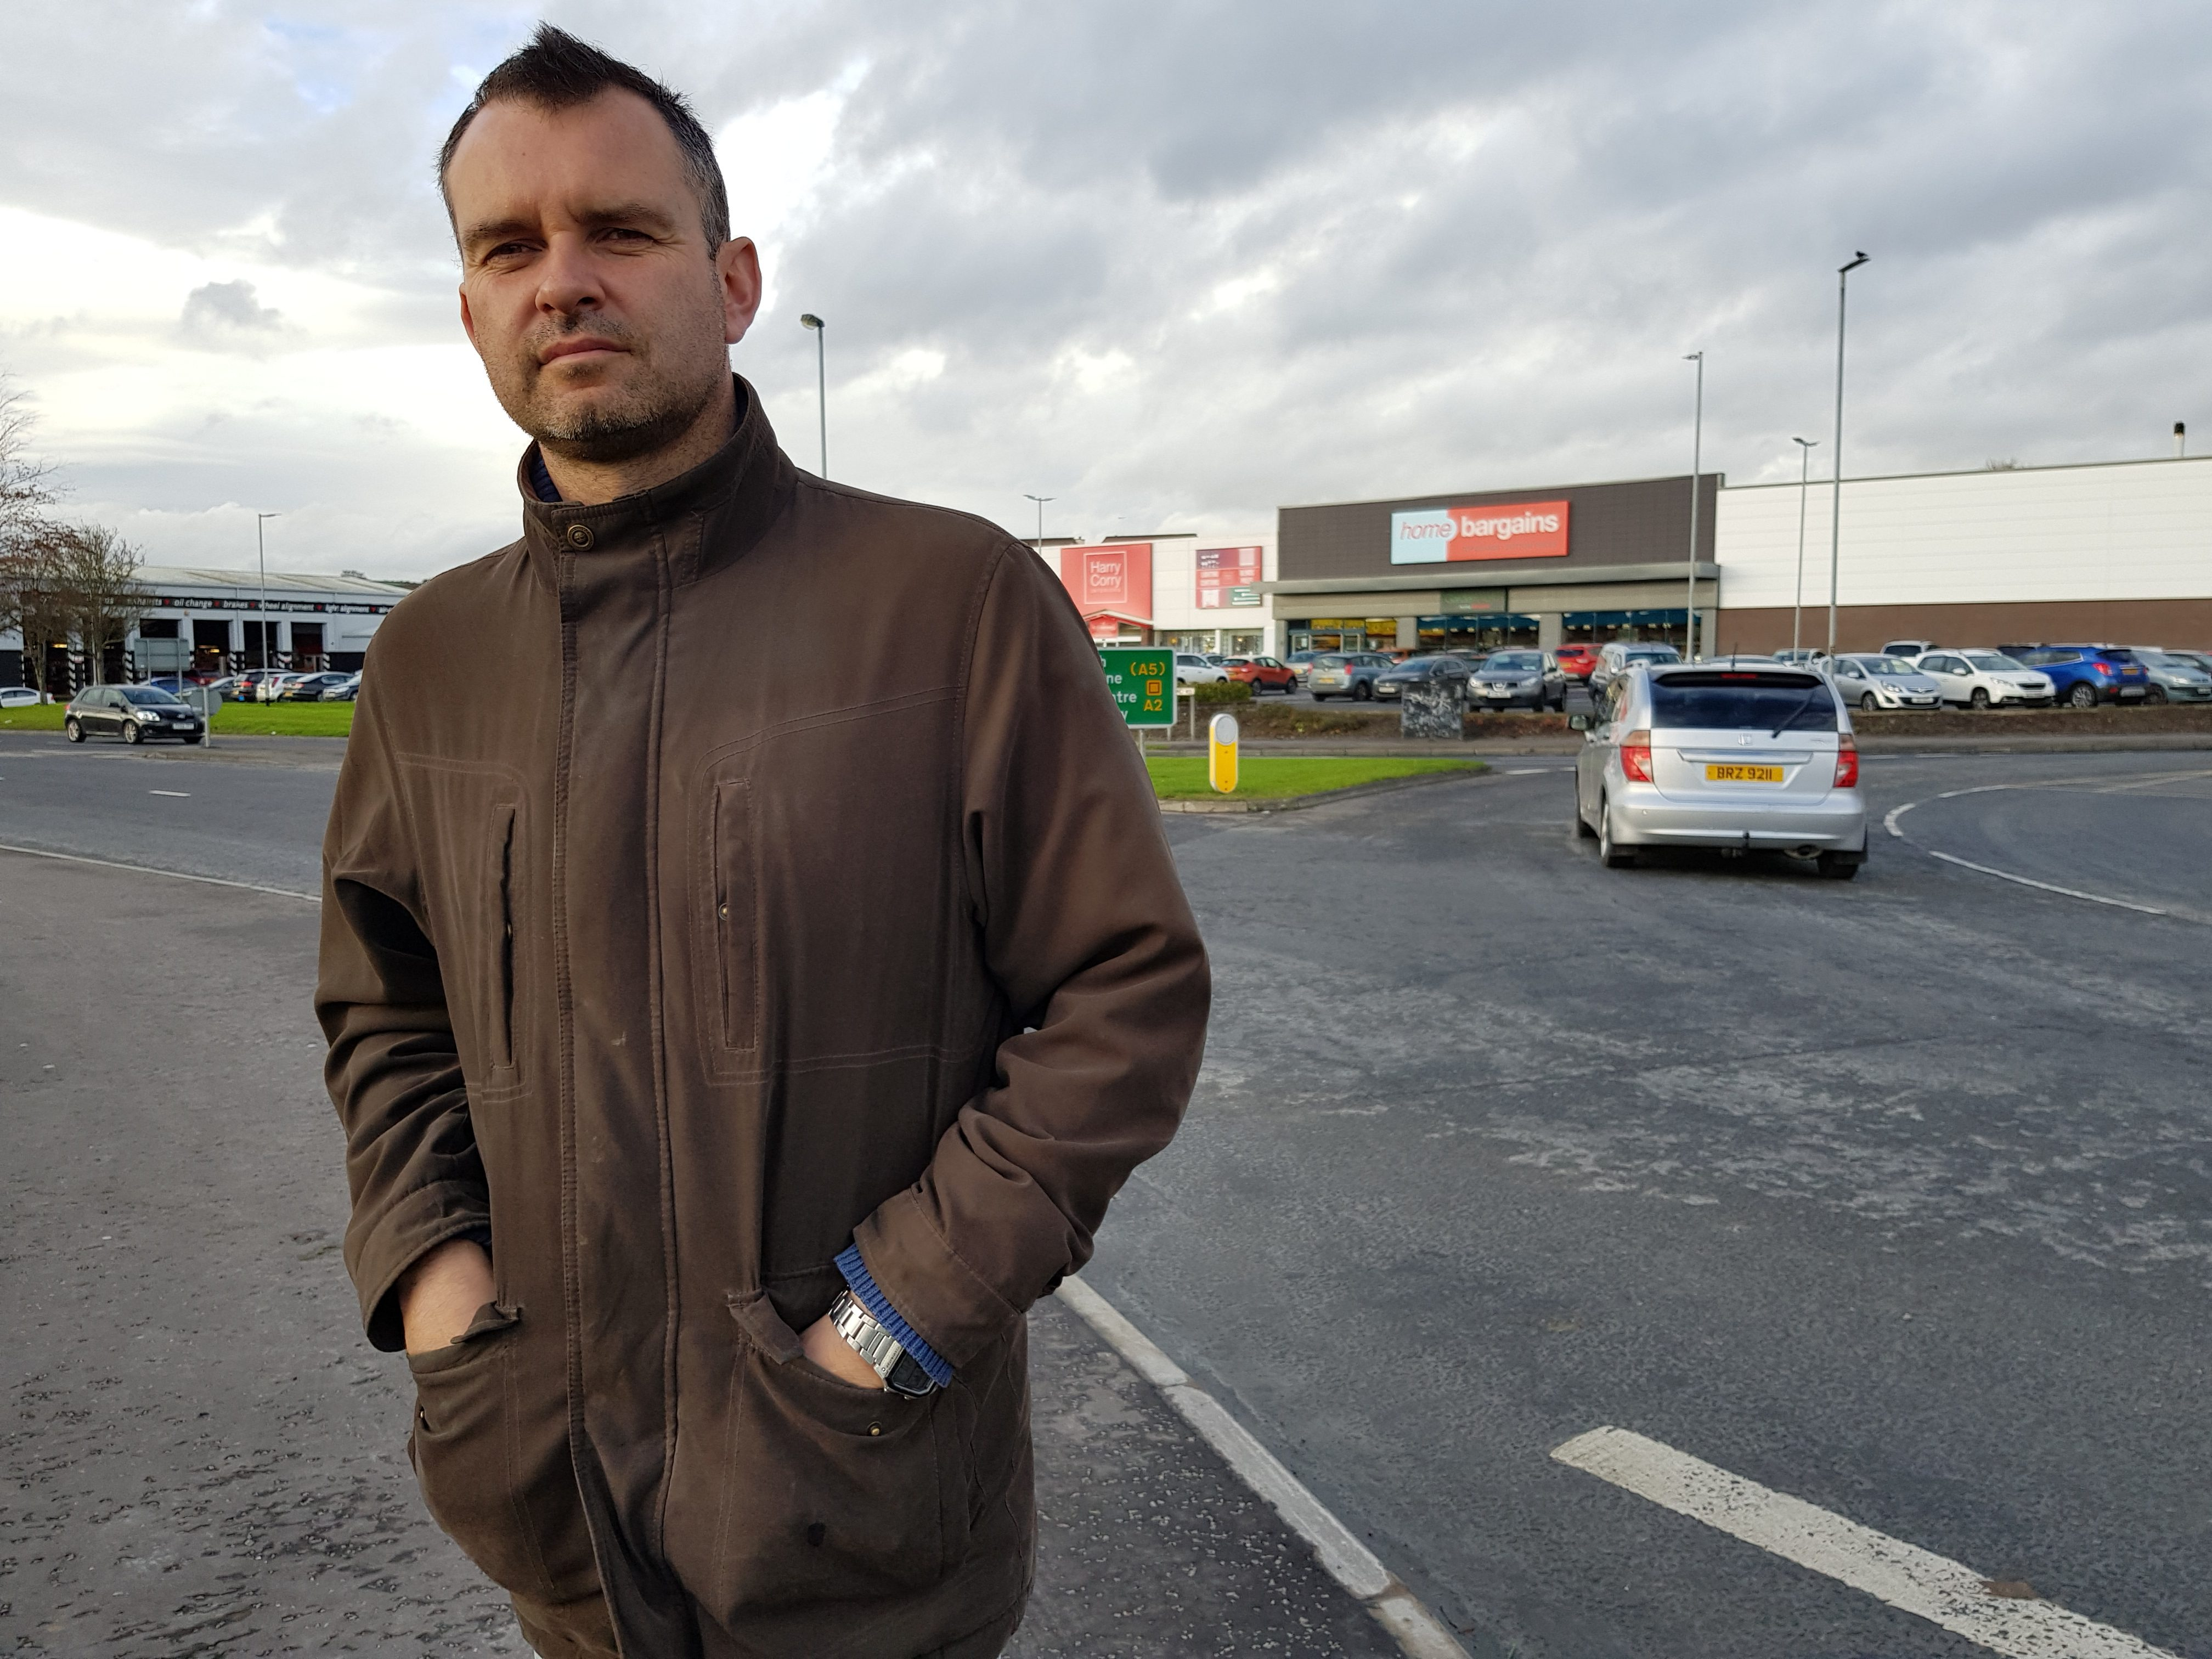 Efforts To Counteract Boy Racer Problem In Derry Car Park Highland